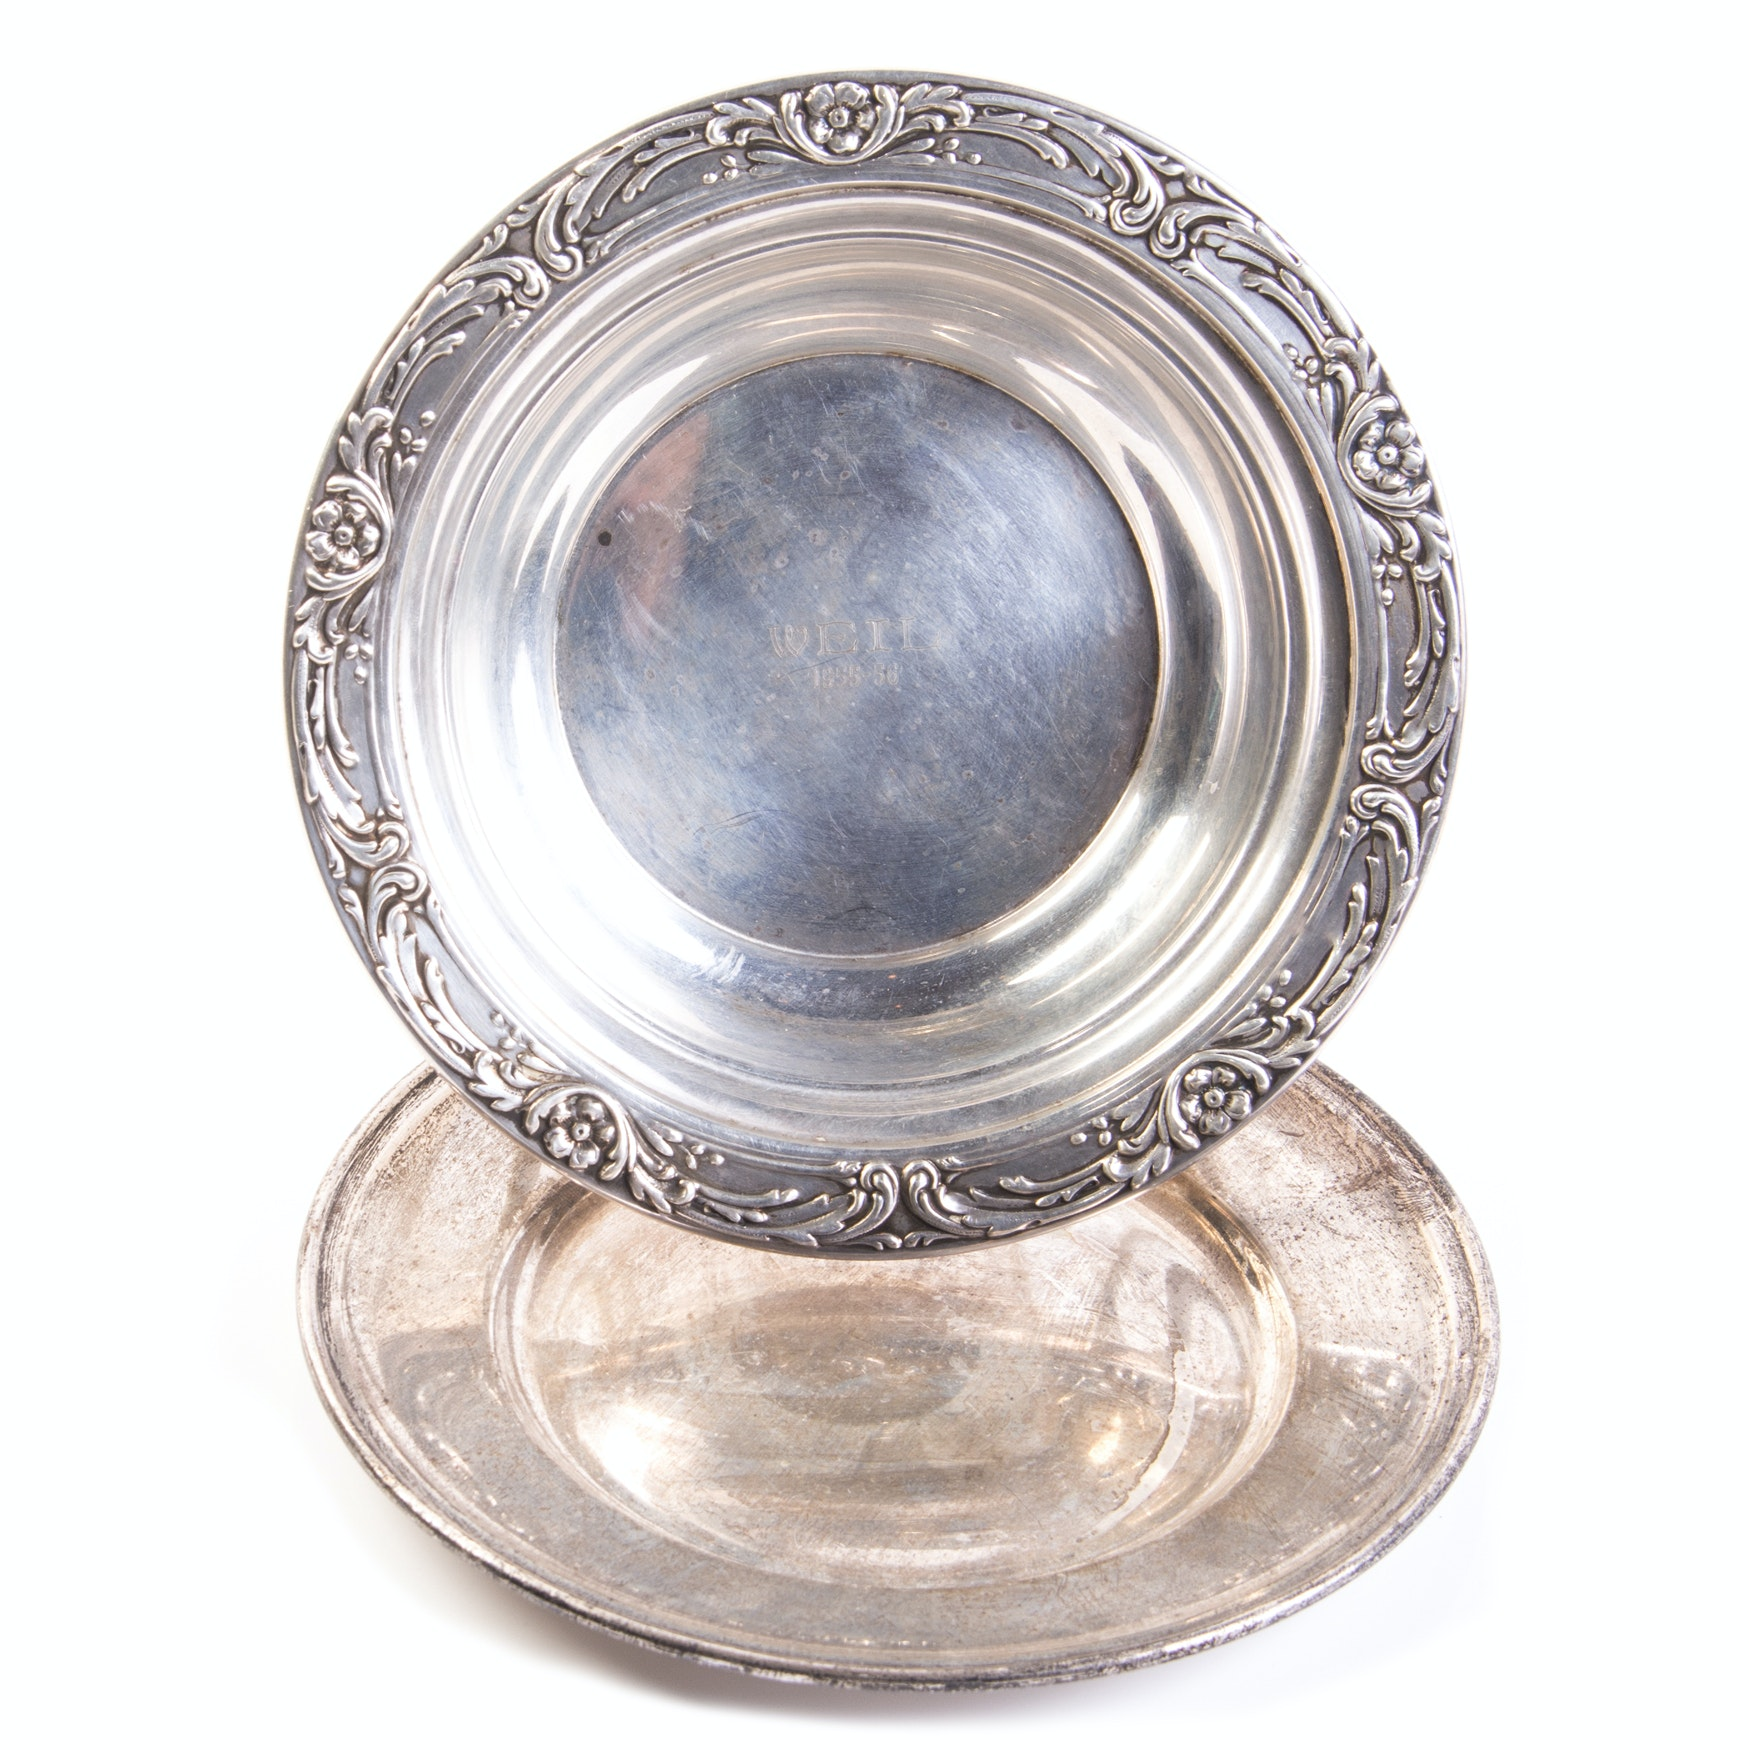 Gorham and Reed & Barton Sterling Silver Dishes